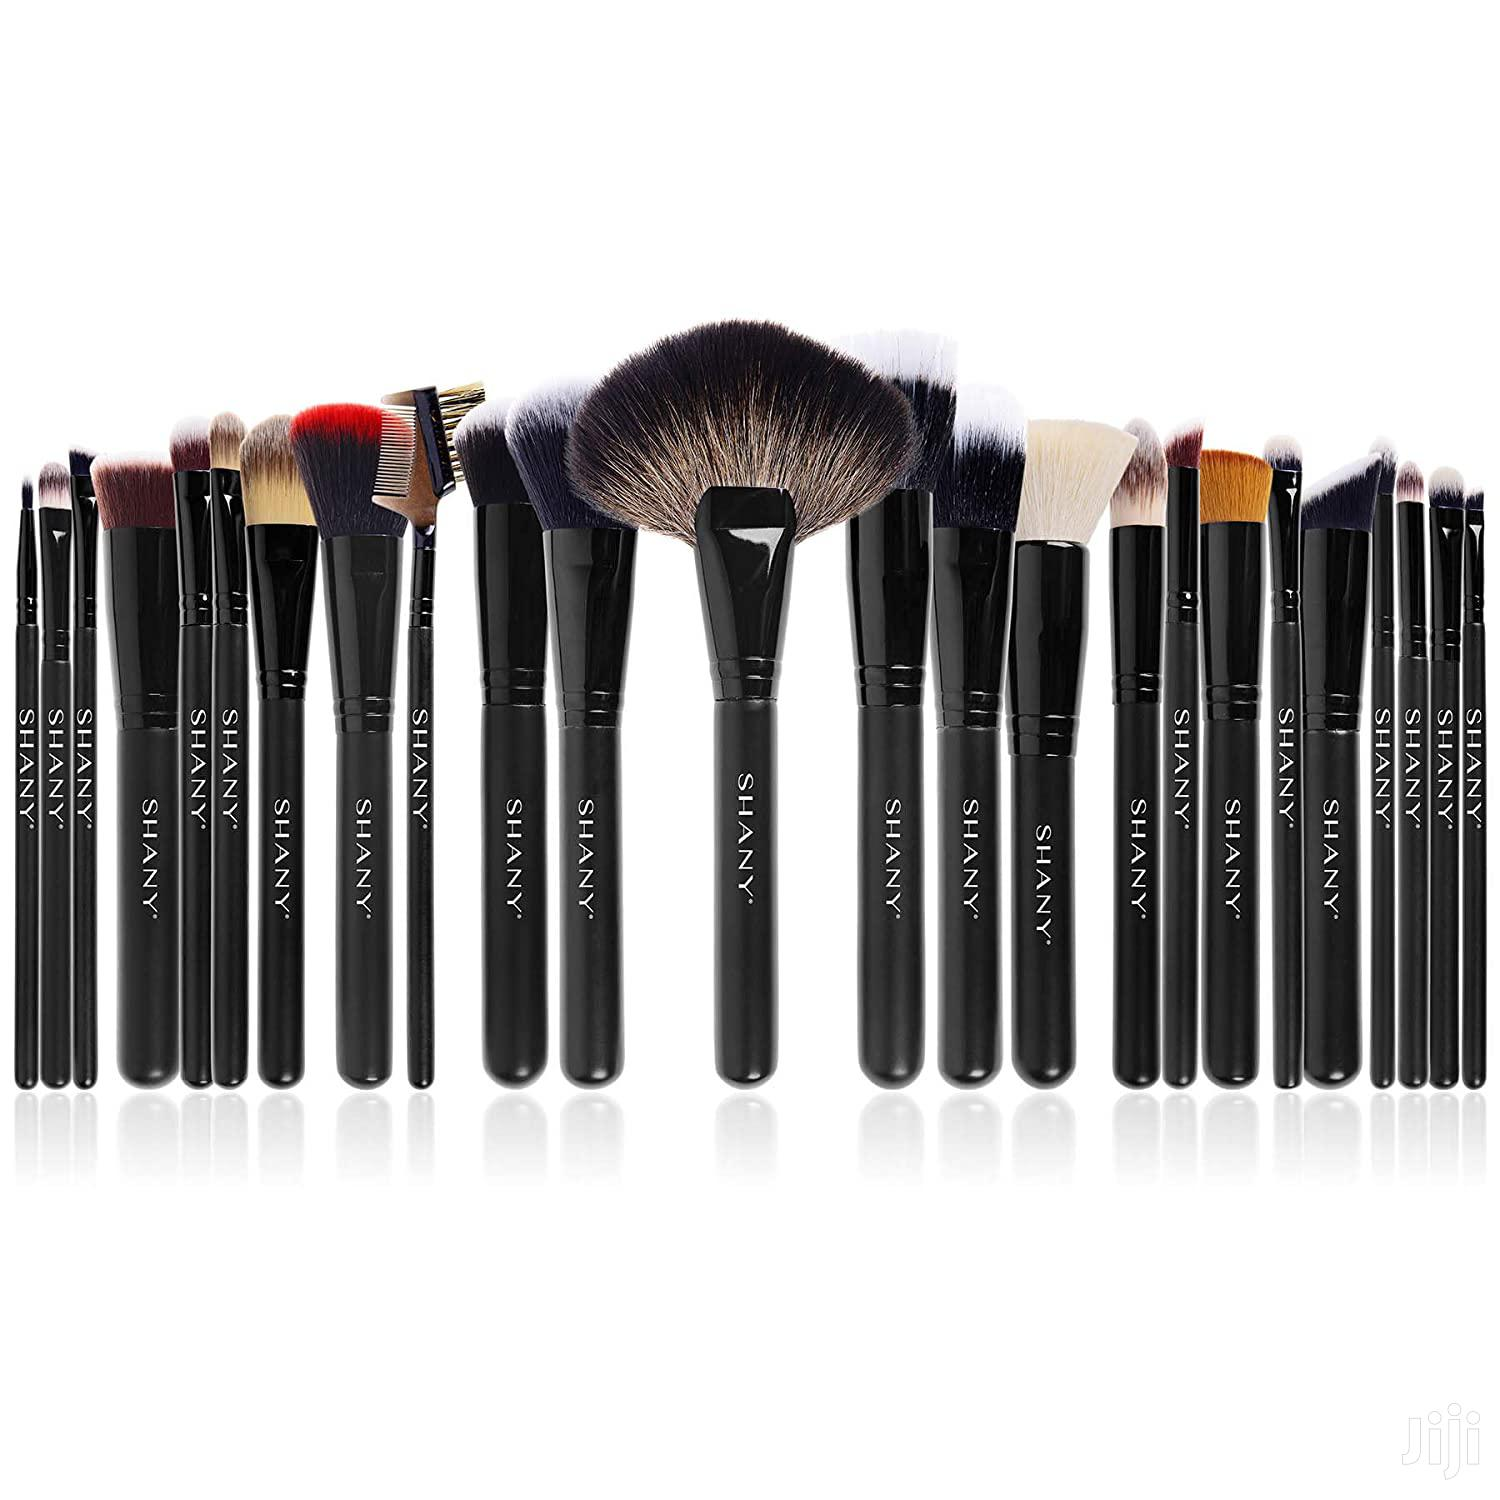 Shany Pro Makeup Brush Set | Health & Beauty Services for sale in Dansoman, Greater Accra, Ghana